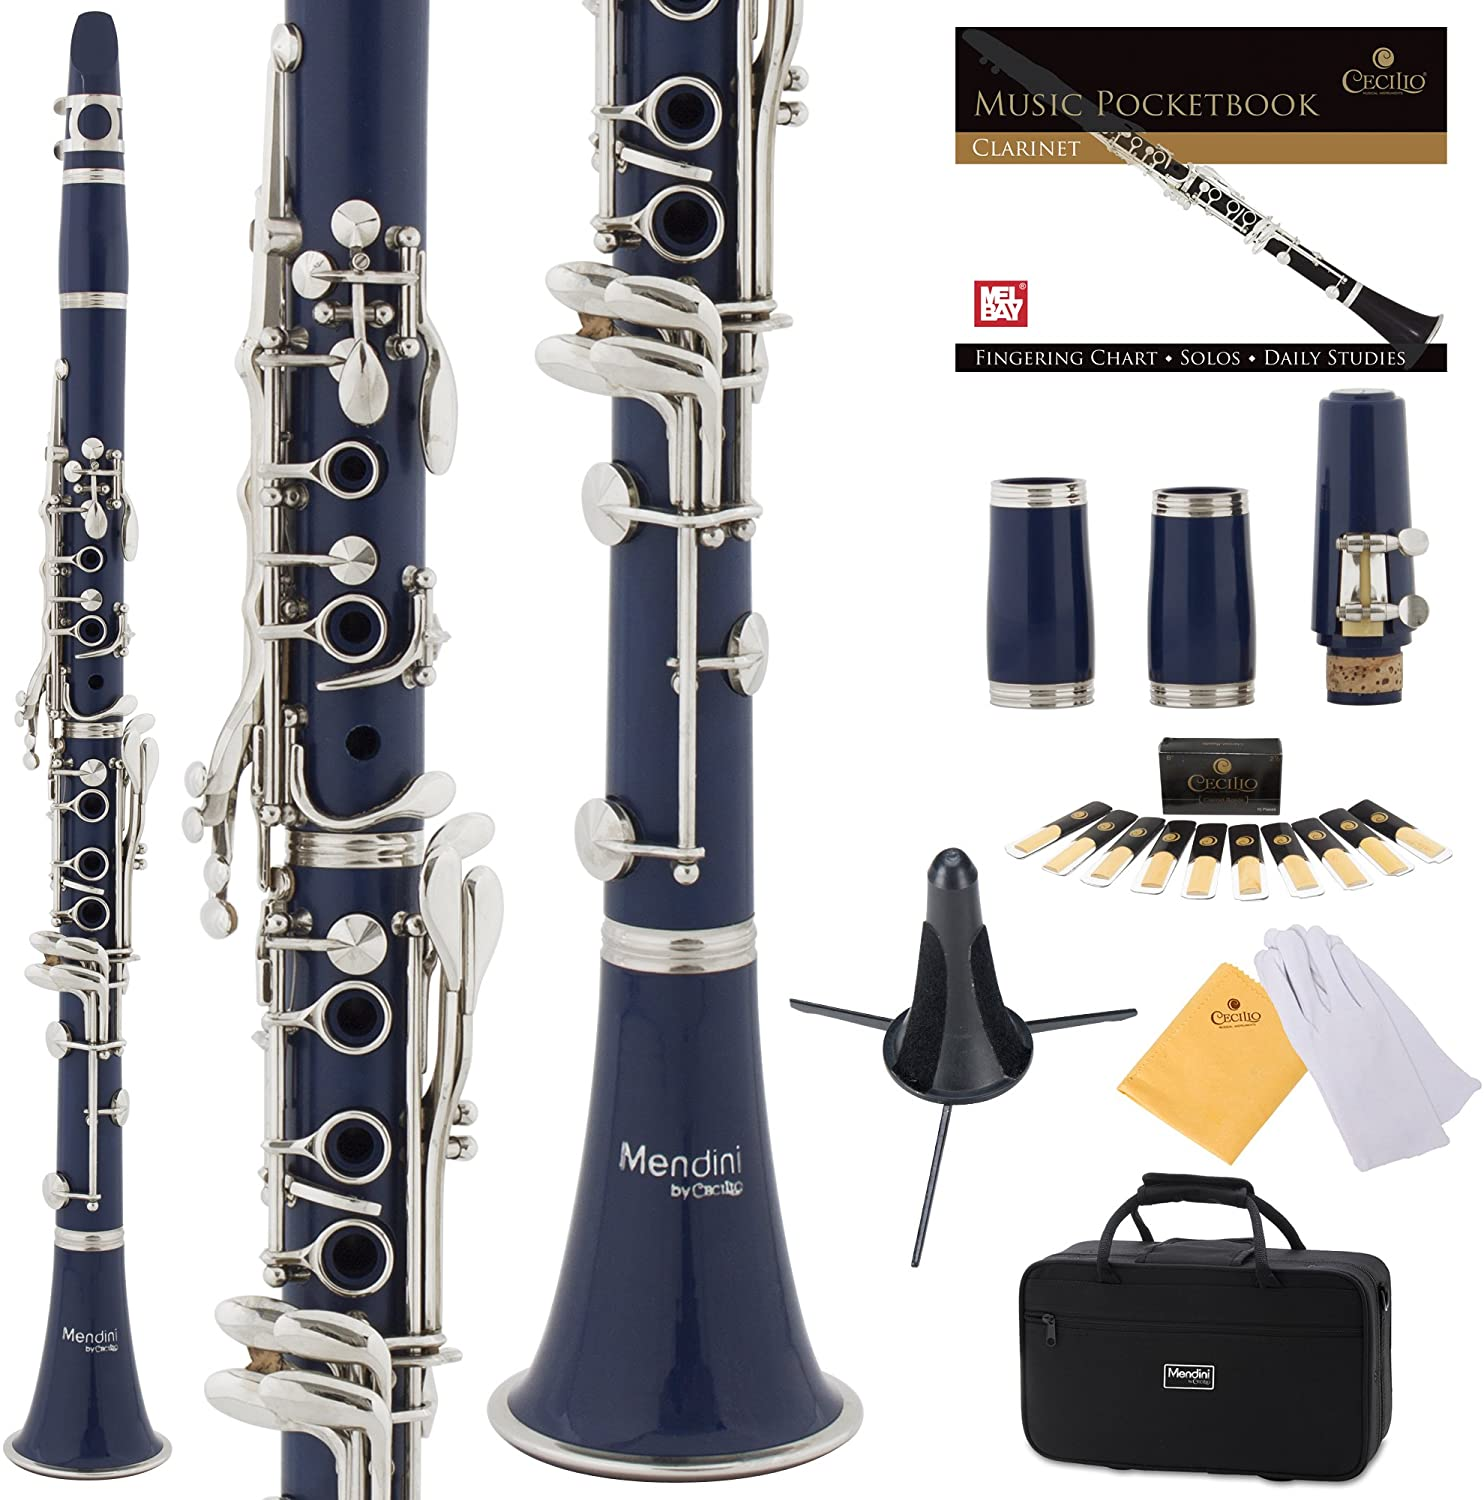 Mendini by Cecilio B Flat Beginner Student Clarinet with 2 Barrels, Case, Stand, Book, 10 Reeds, Mouthpiece and Warranty (Blue)